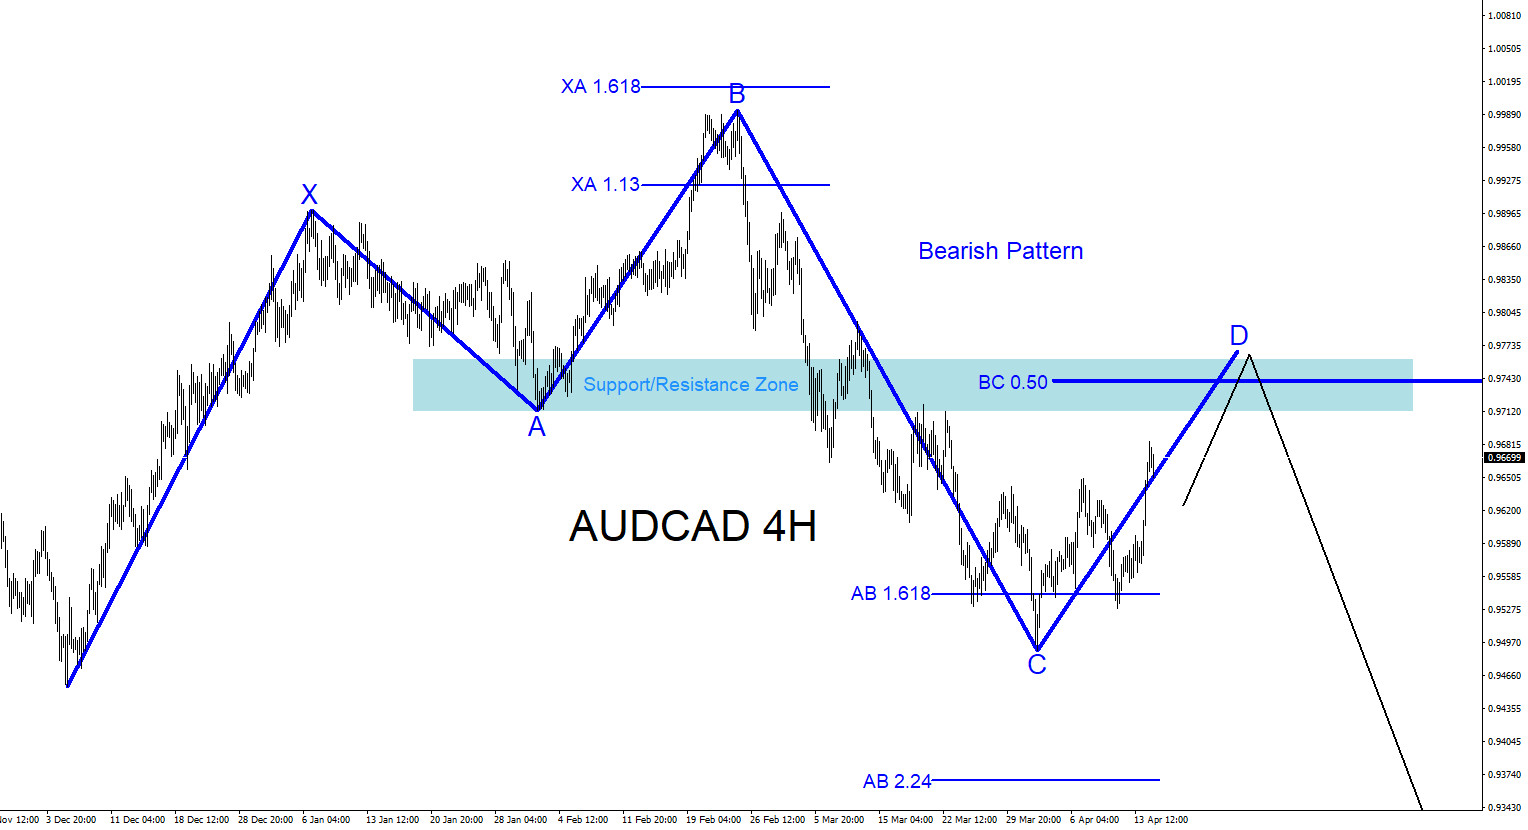 AUDCAD : Possible Bearish Pattern?